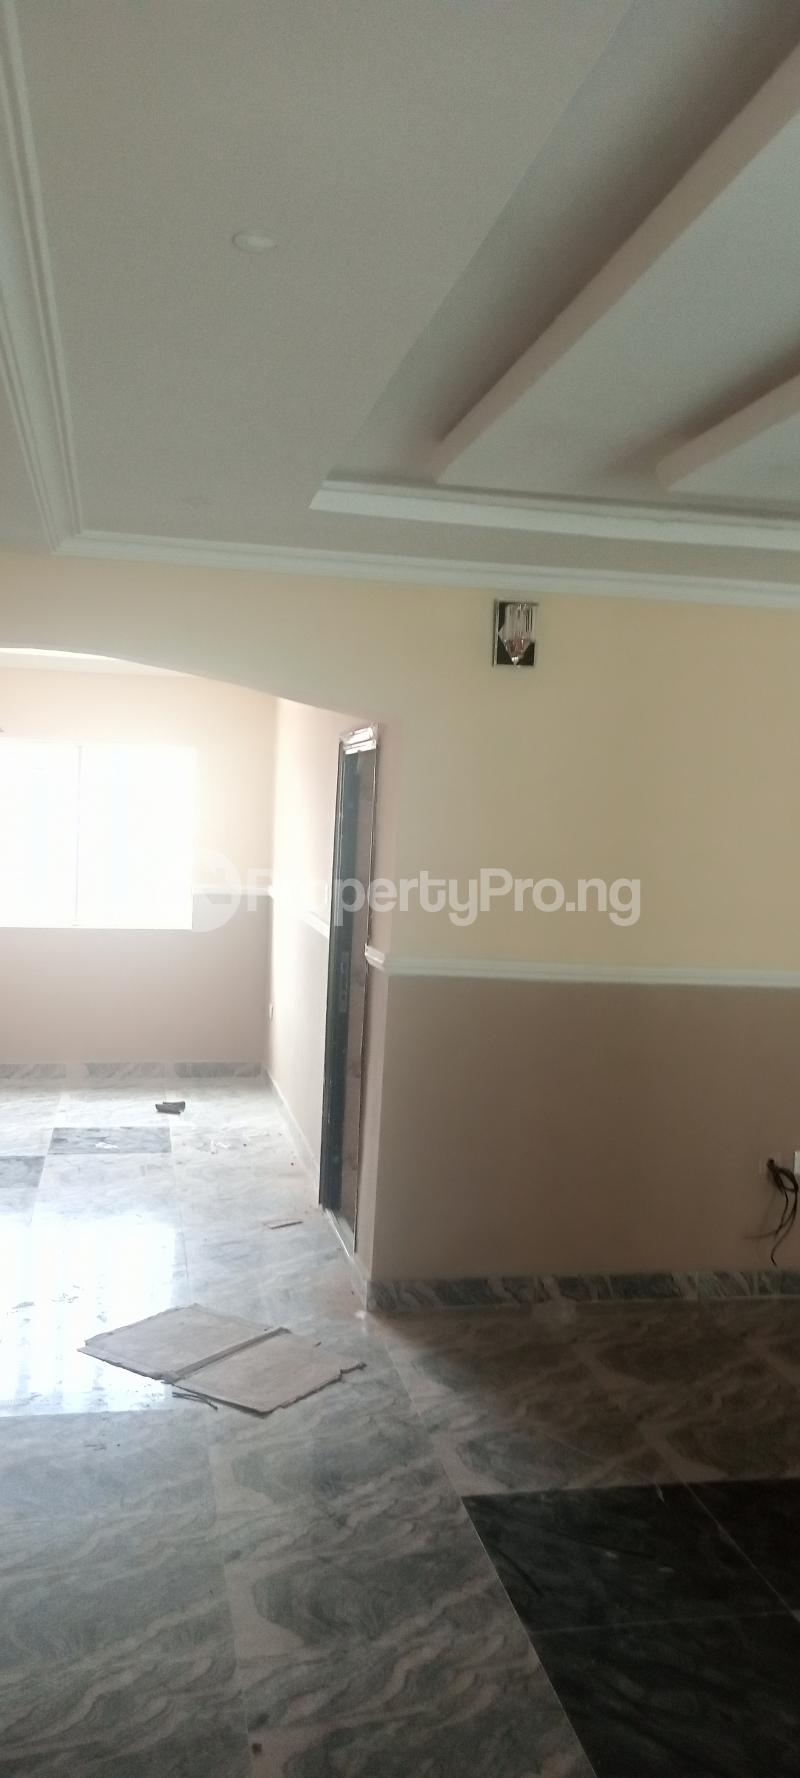 3 bedroom Flat / Apartment for rent A close Oke-Ira Ogba Lagos - 14